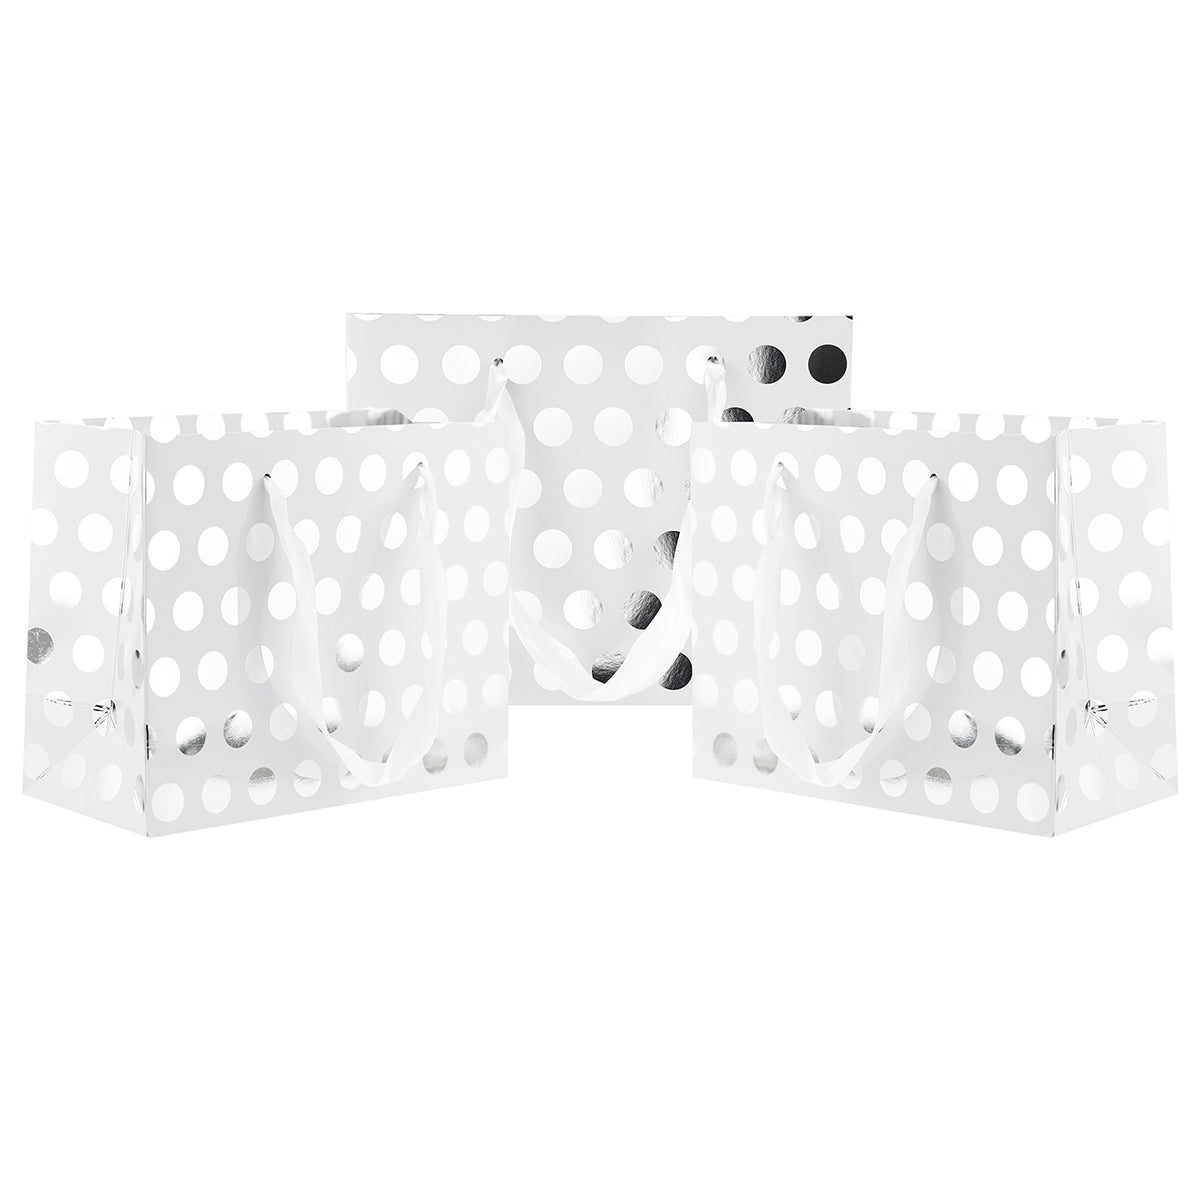 Three standing silver polka dots small paper bags with silver satin ribbon handles